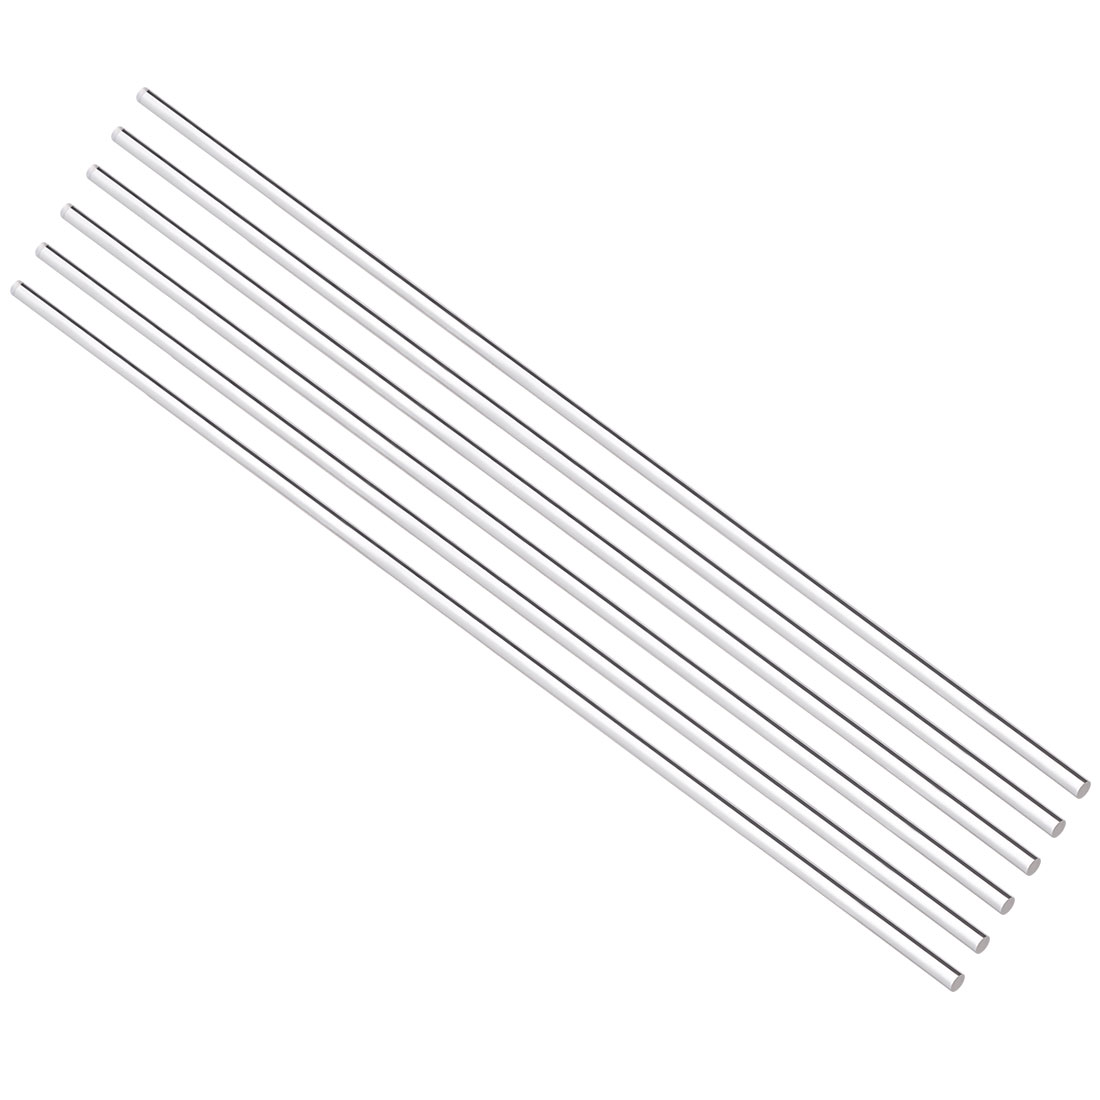 2mmx200mm Round Shape Solid Acrylic Rod PMMA Extruded Bar Clear 6Pcs